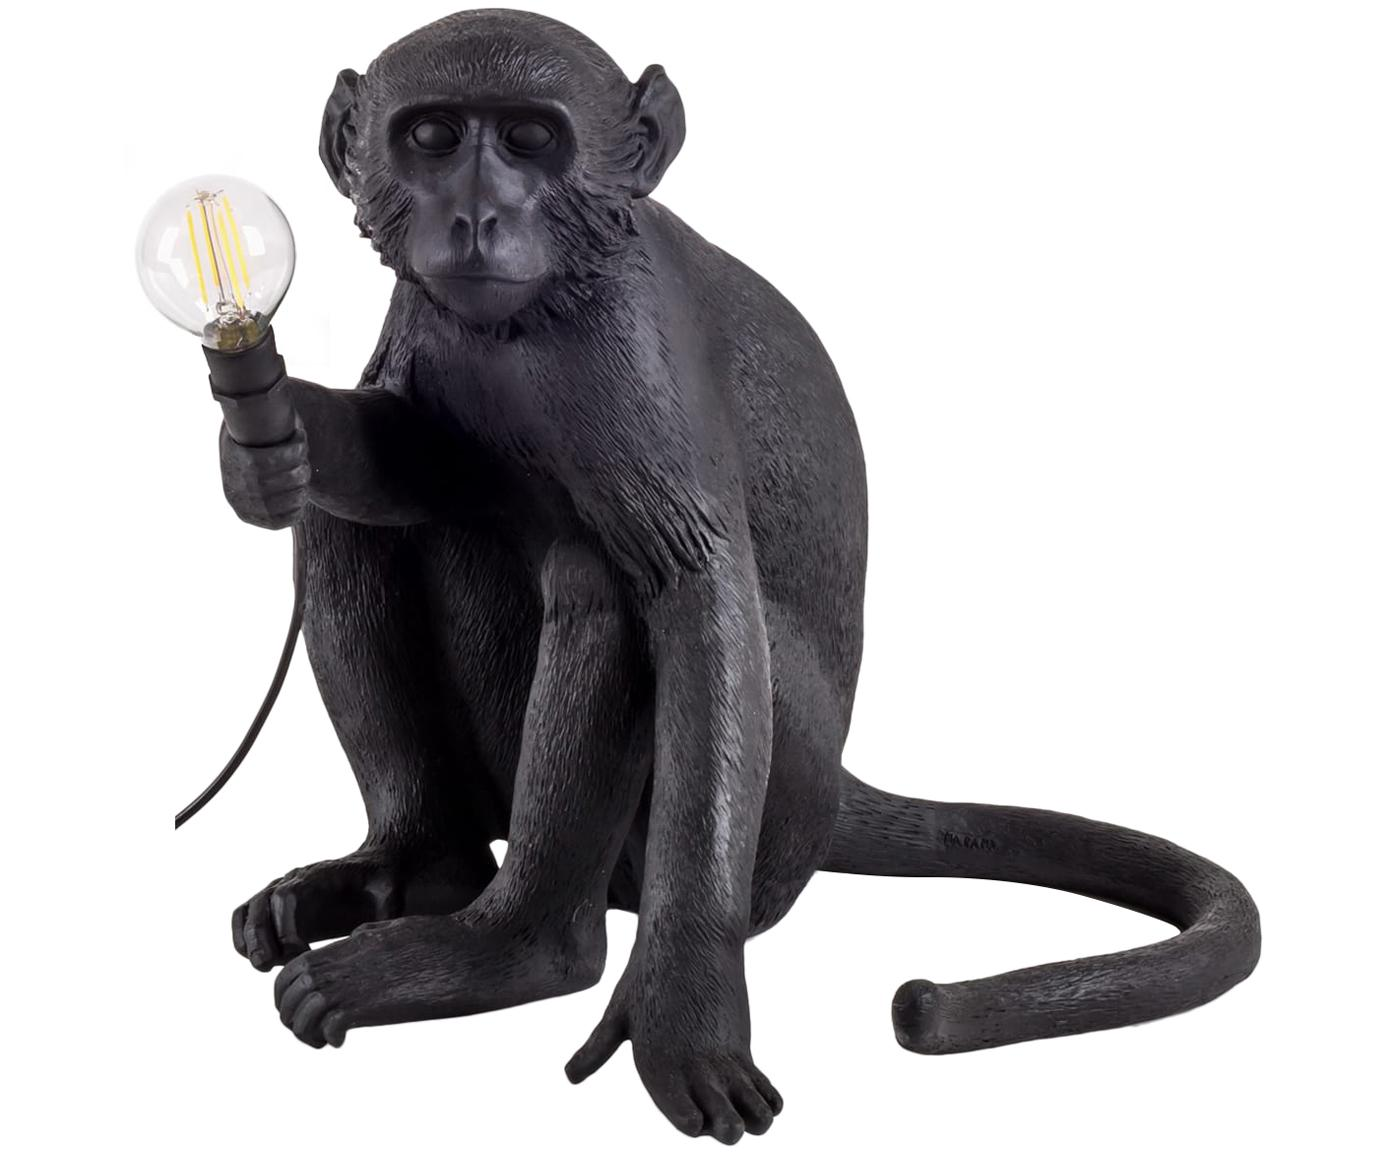 Outdoor LED tafellamp Monkey, Kunsthars, Zwart, 34 x 32 cm